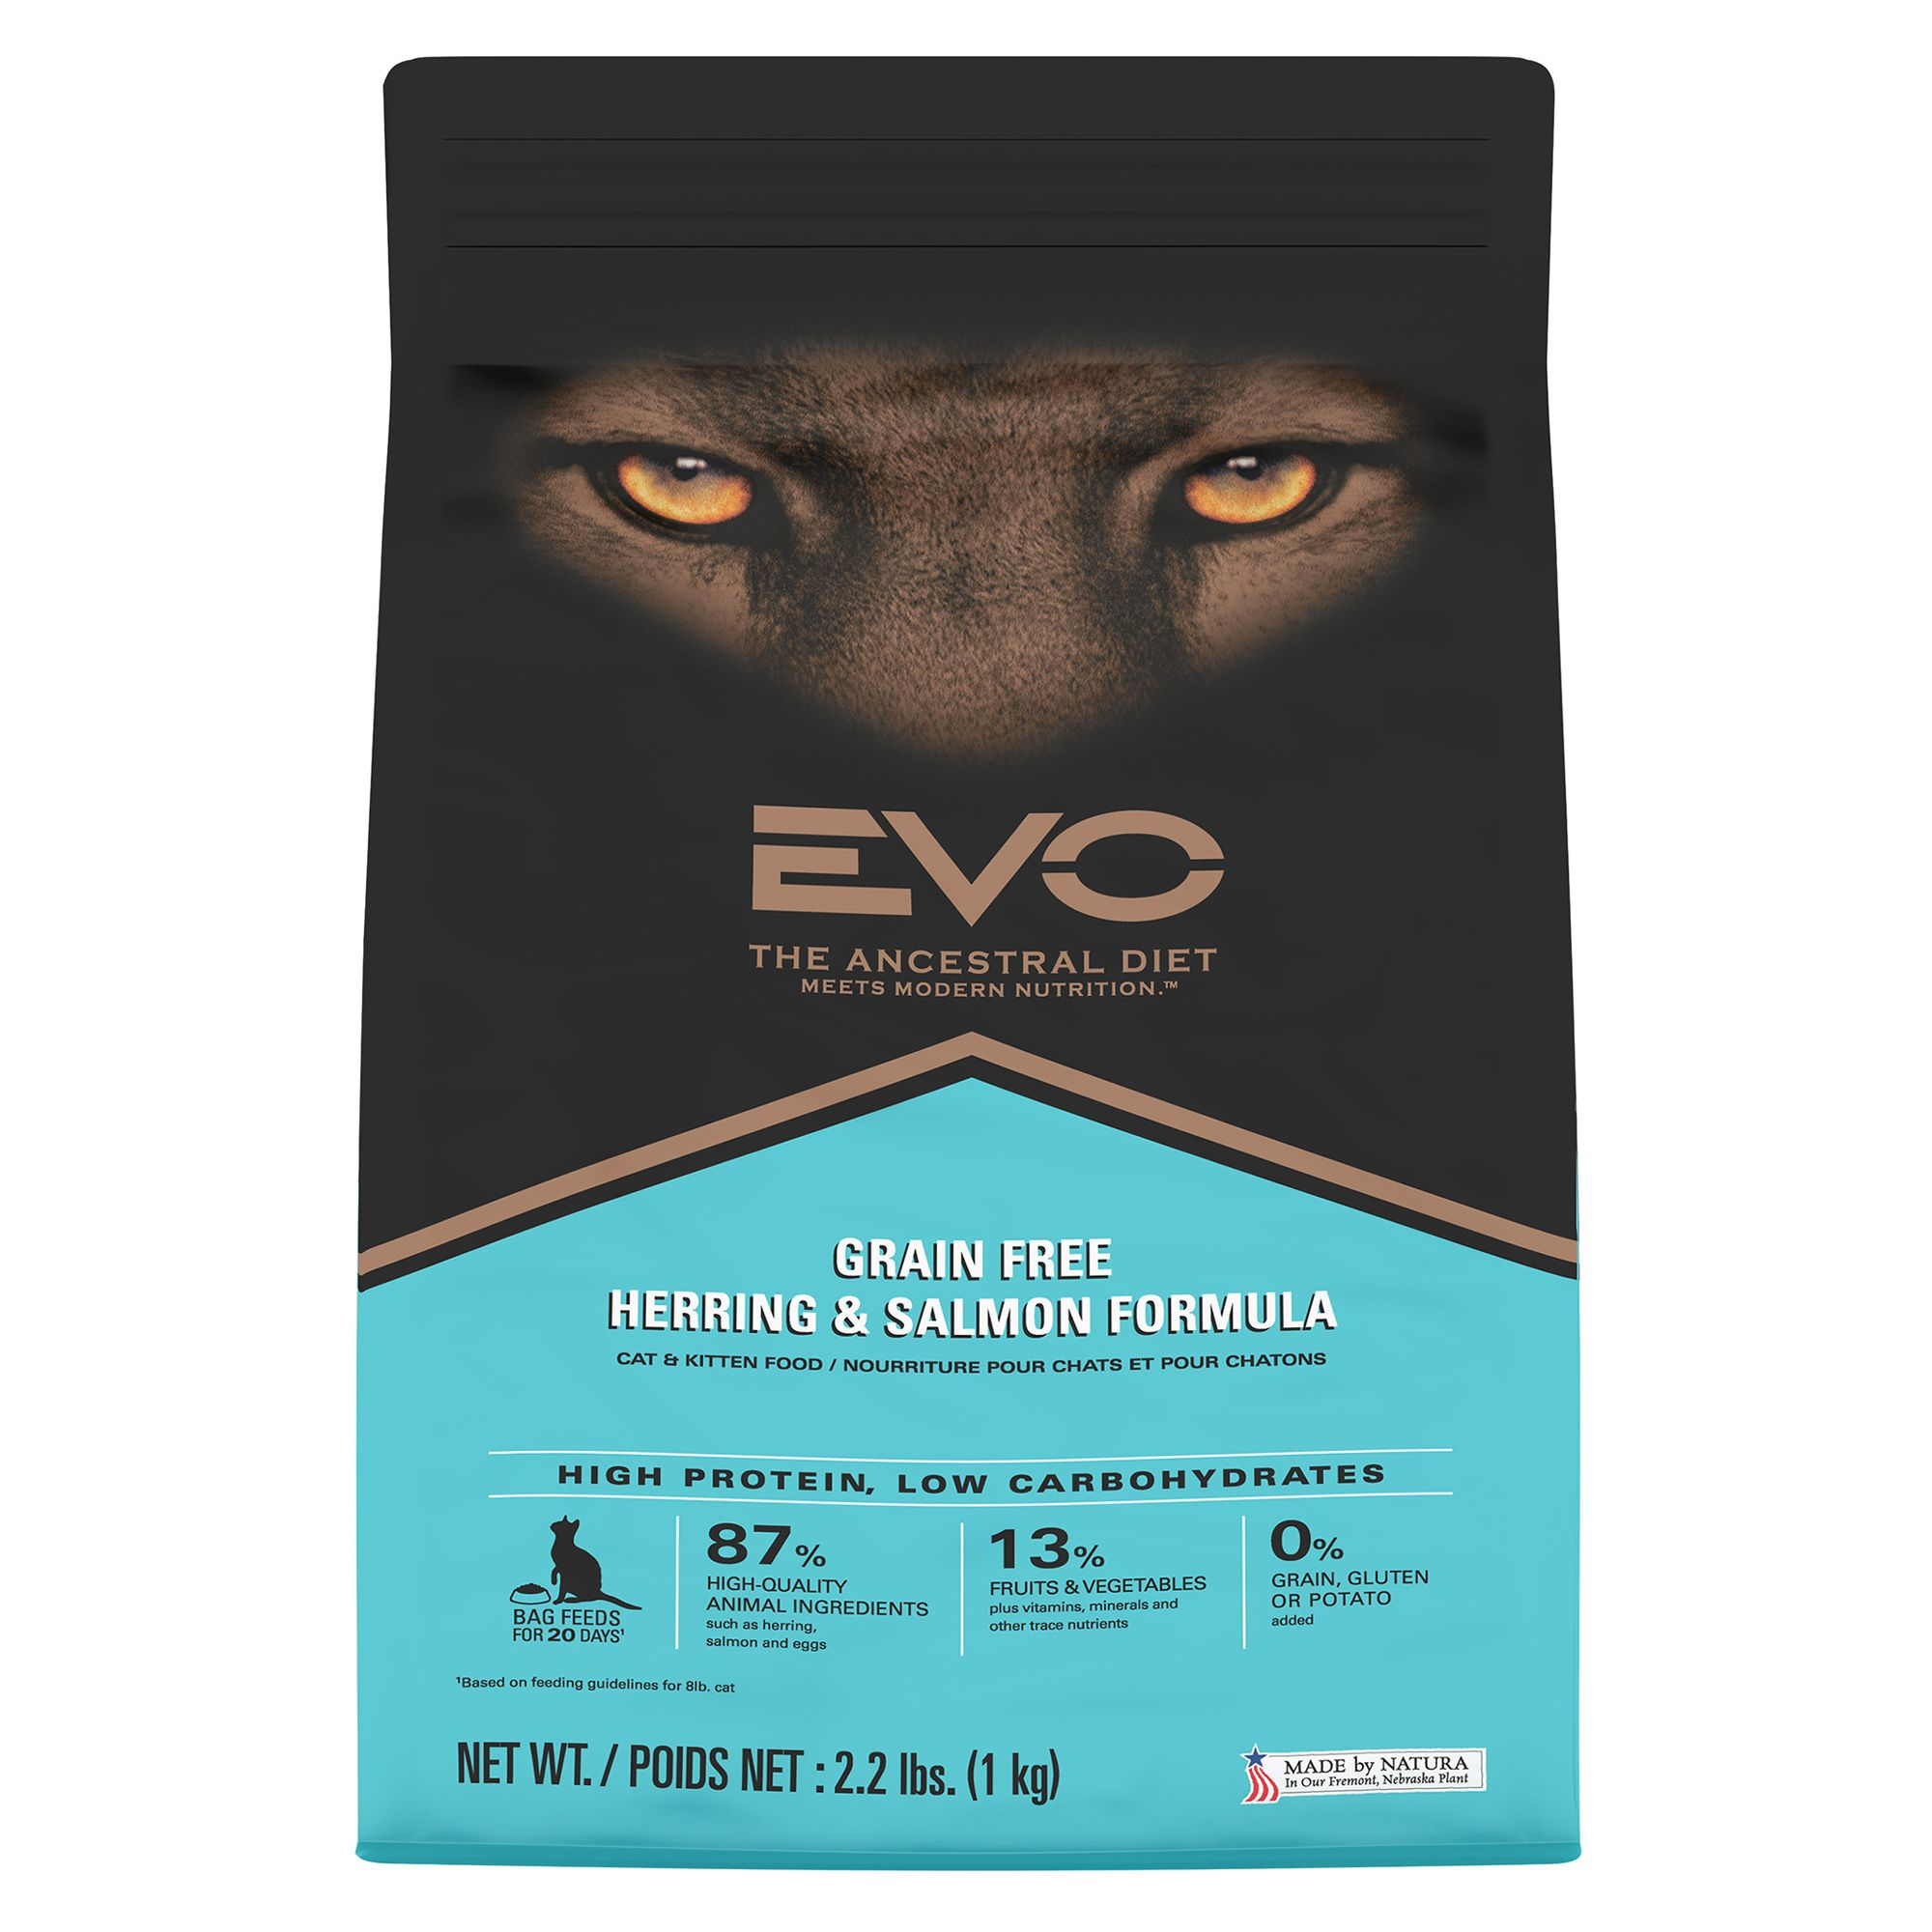 Evo Cat And Kitten Food Grain Free Gluten Free Herring And Salmon Size 2.2 Lb